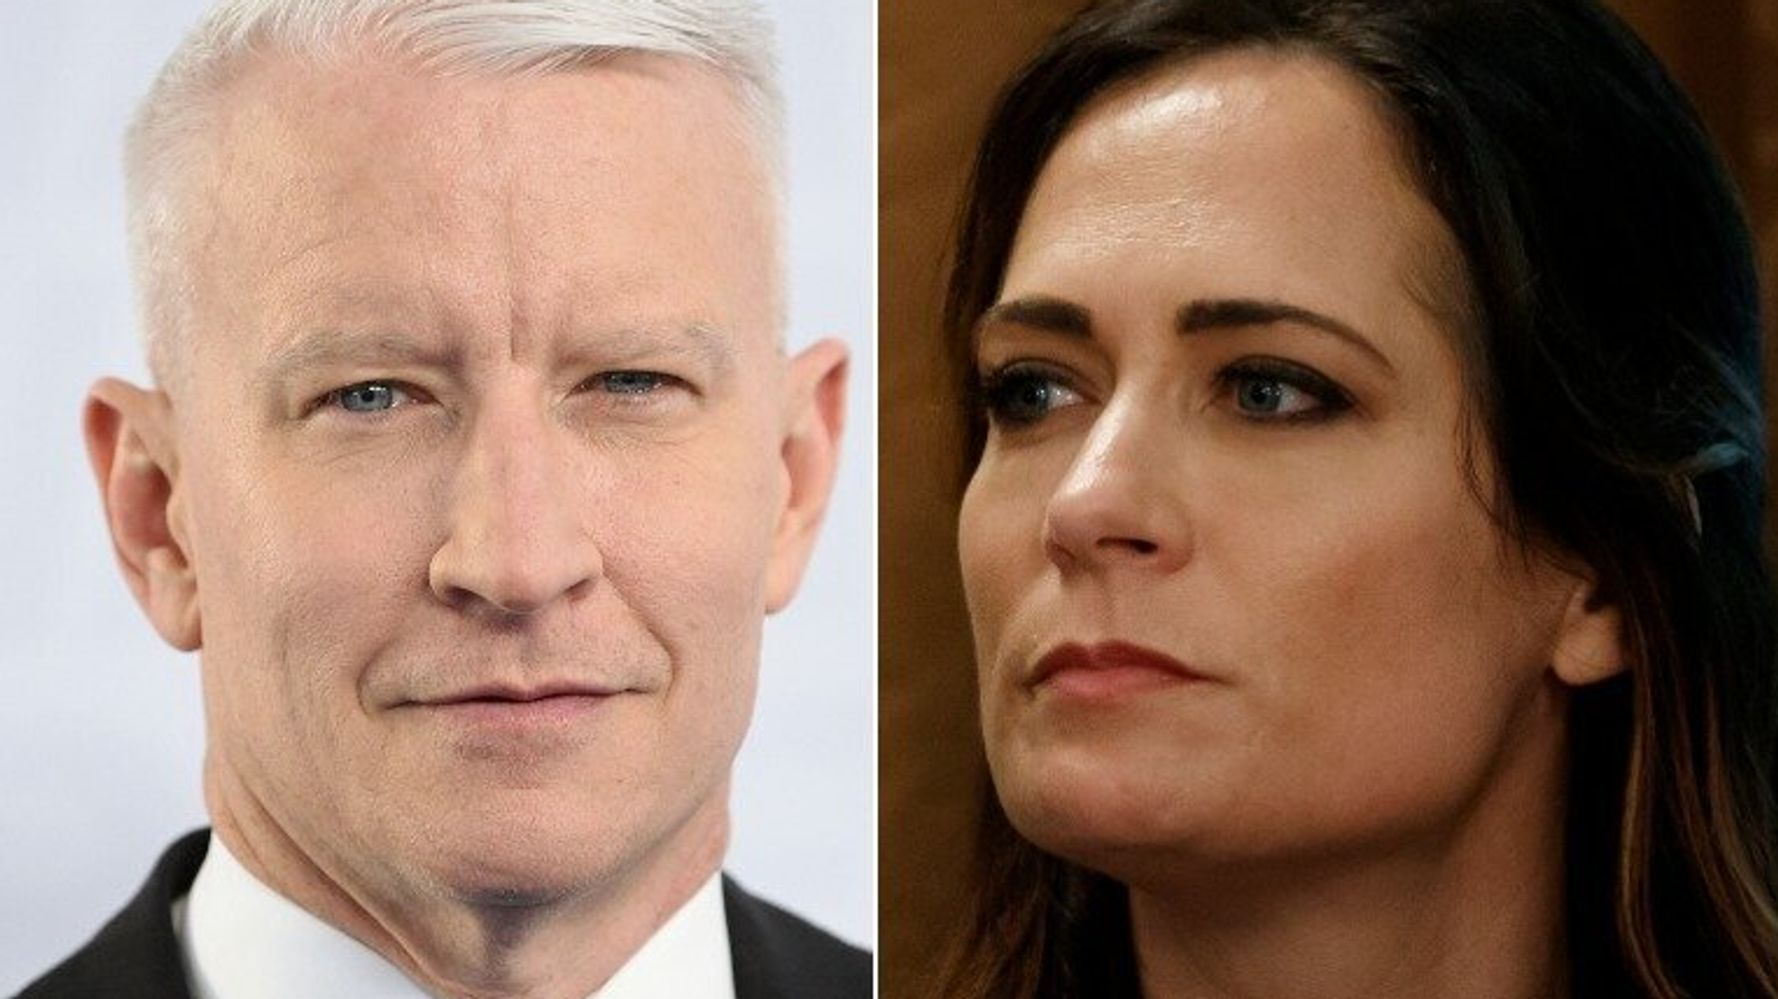 Westlake Legal Group 5daaa131210000a615ad3471 Anderson Cooper Delivers Scathing Review Of Rare Stephanie Grisham Interview